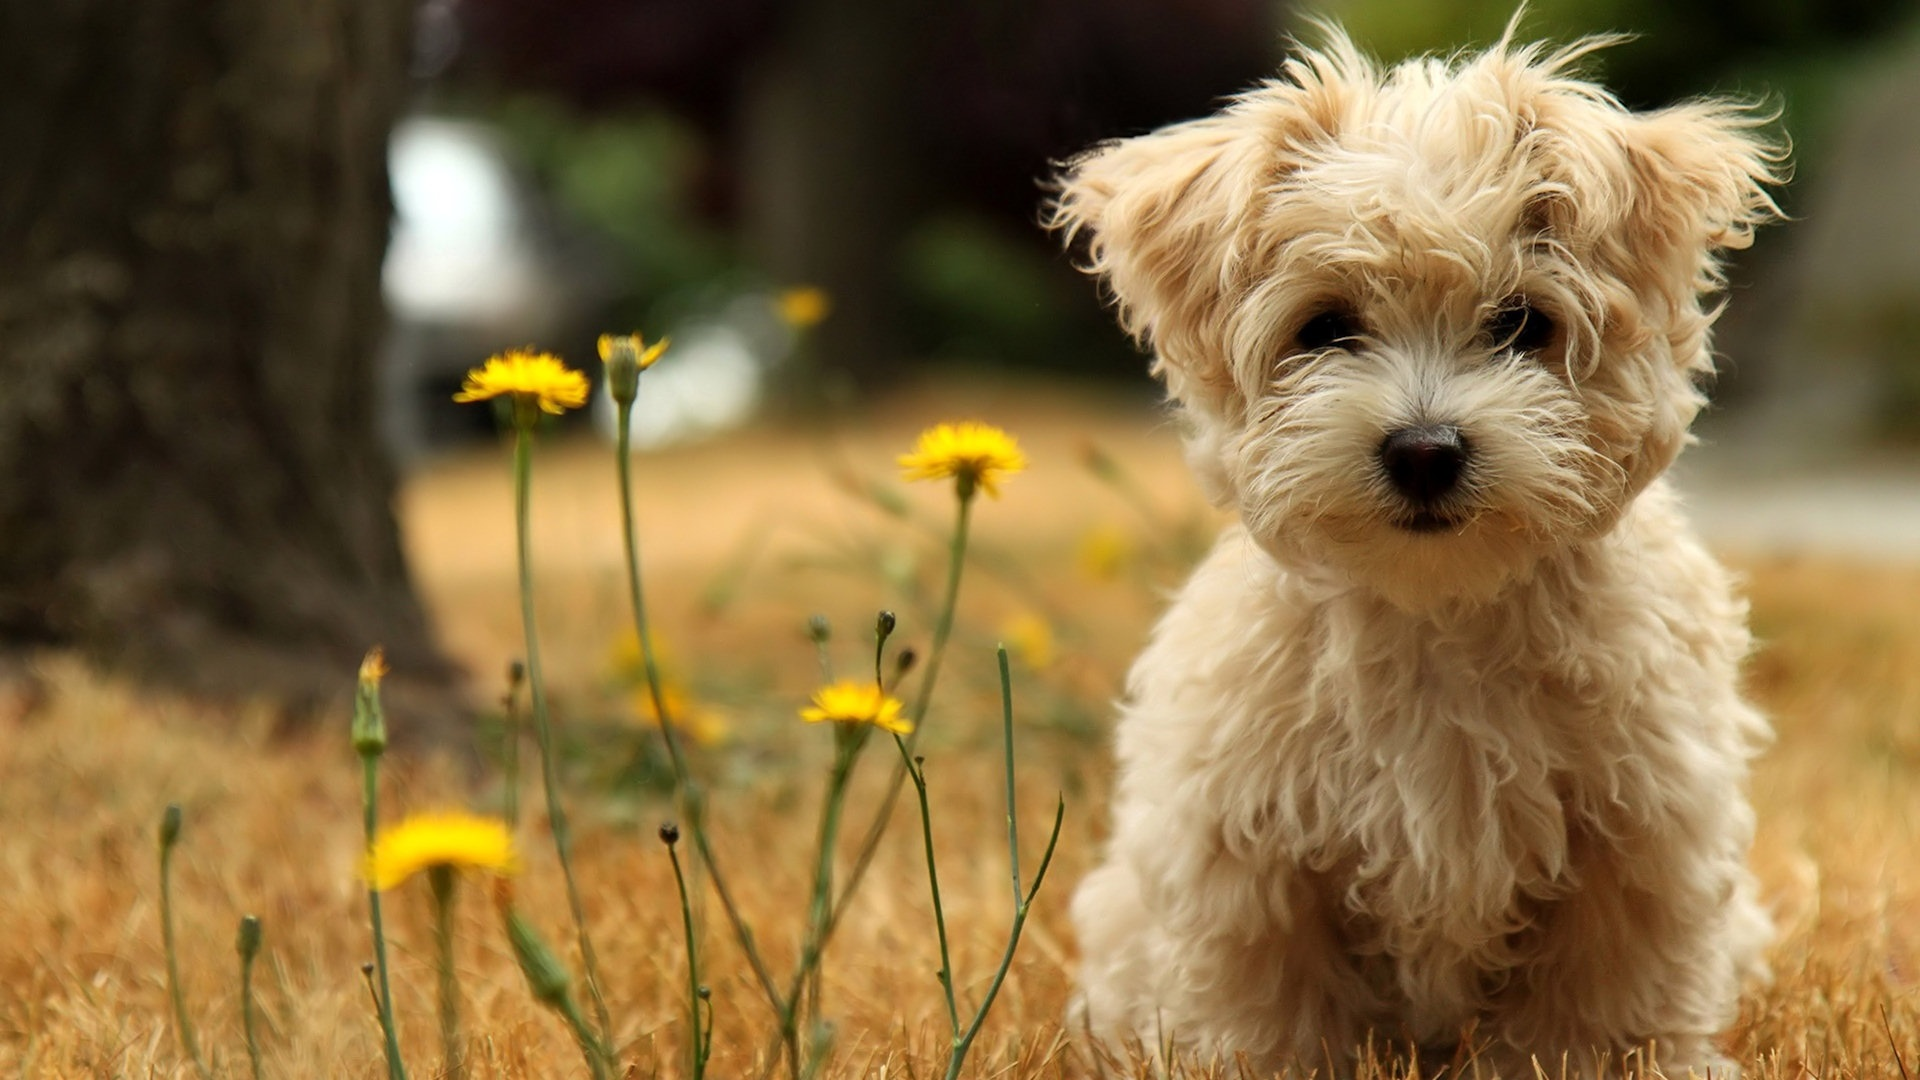 Cute Dog Wallpaper